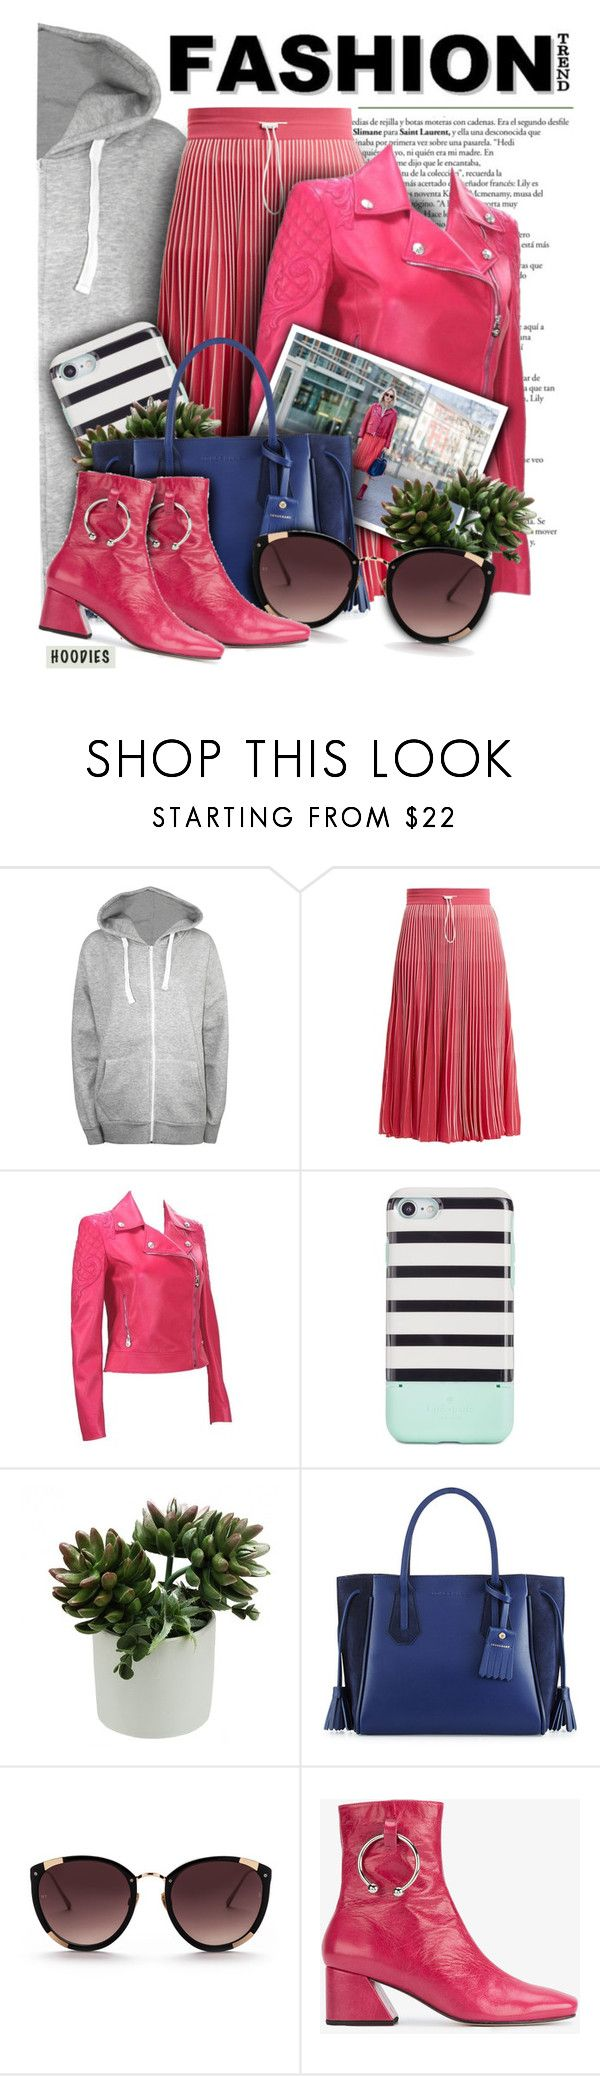 """""""The """"Hoodie"""" Fashion Trend"""" by angiesprad ❤ liked on Polyvore featuring WearAll, Valentino, Versace, Kate Spade, Longchamp, Rebecca Taylor, Dorateymur and plus size clothing"""